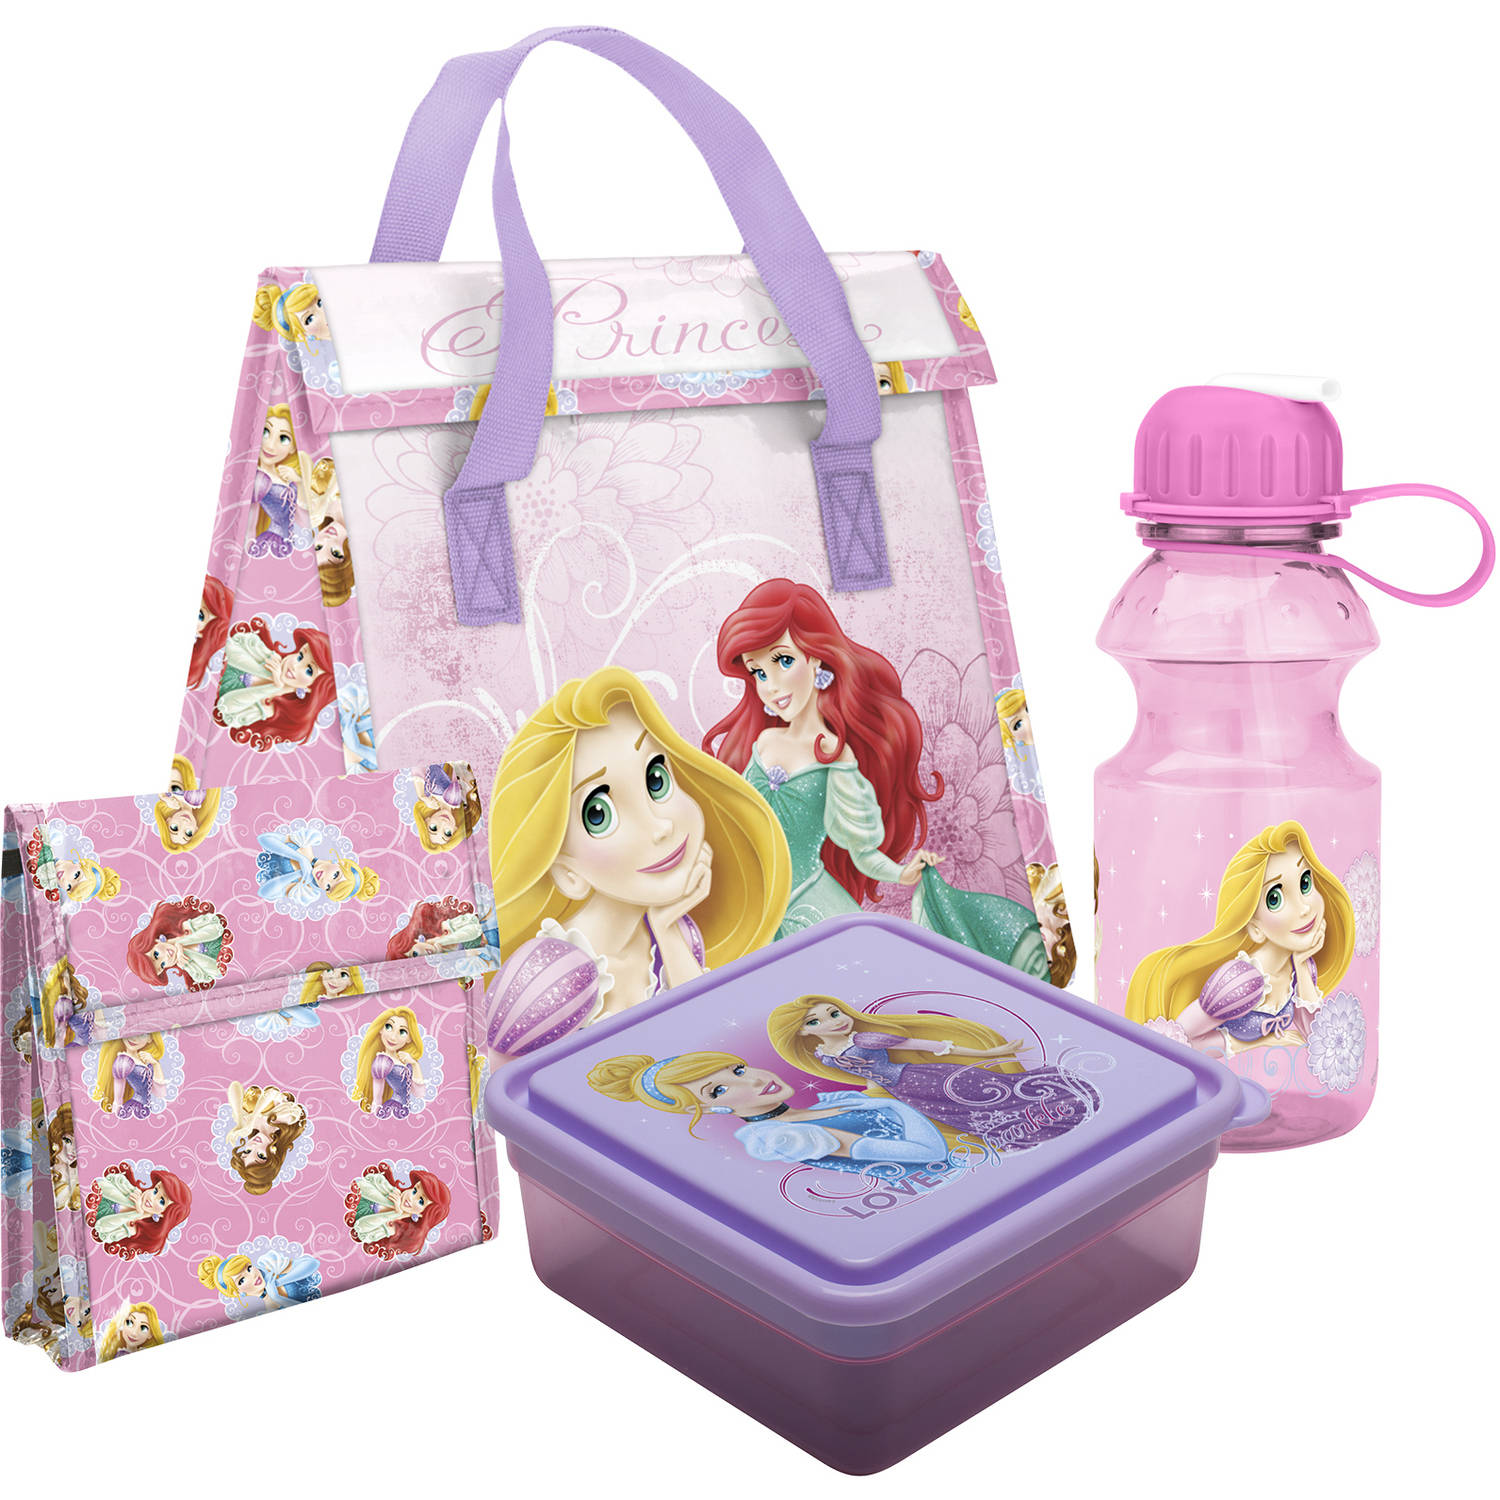 Disney Princess 4-Piece Lunch Set